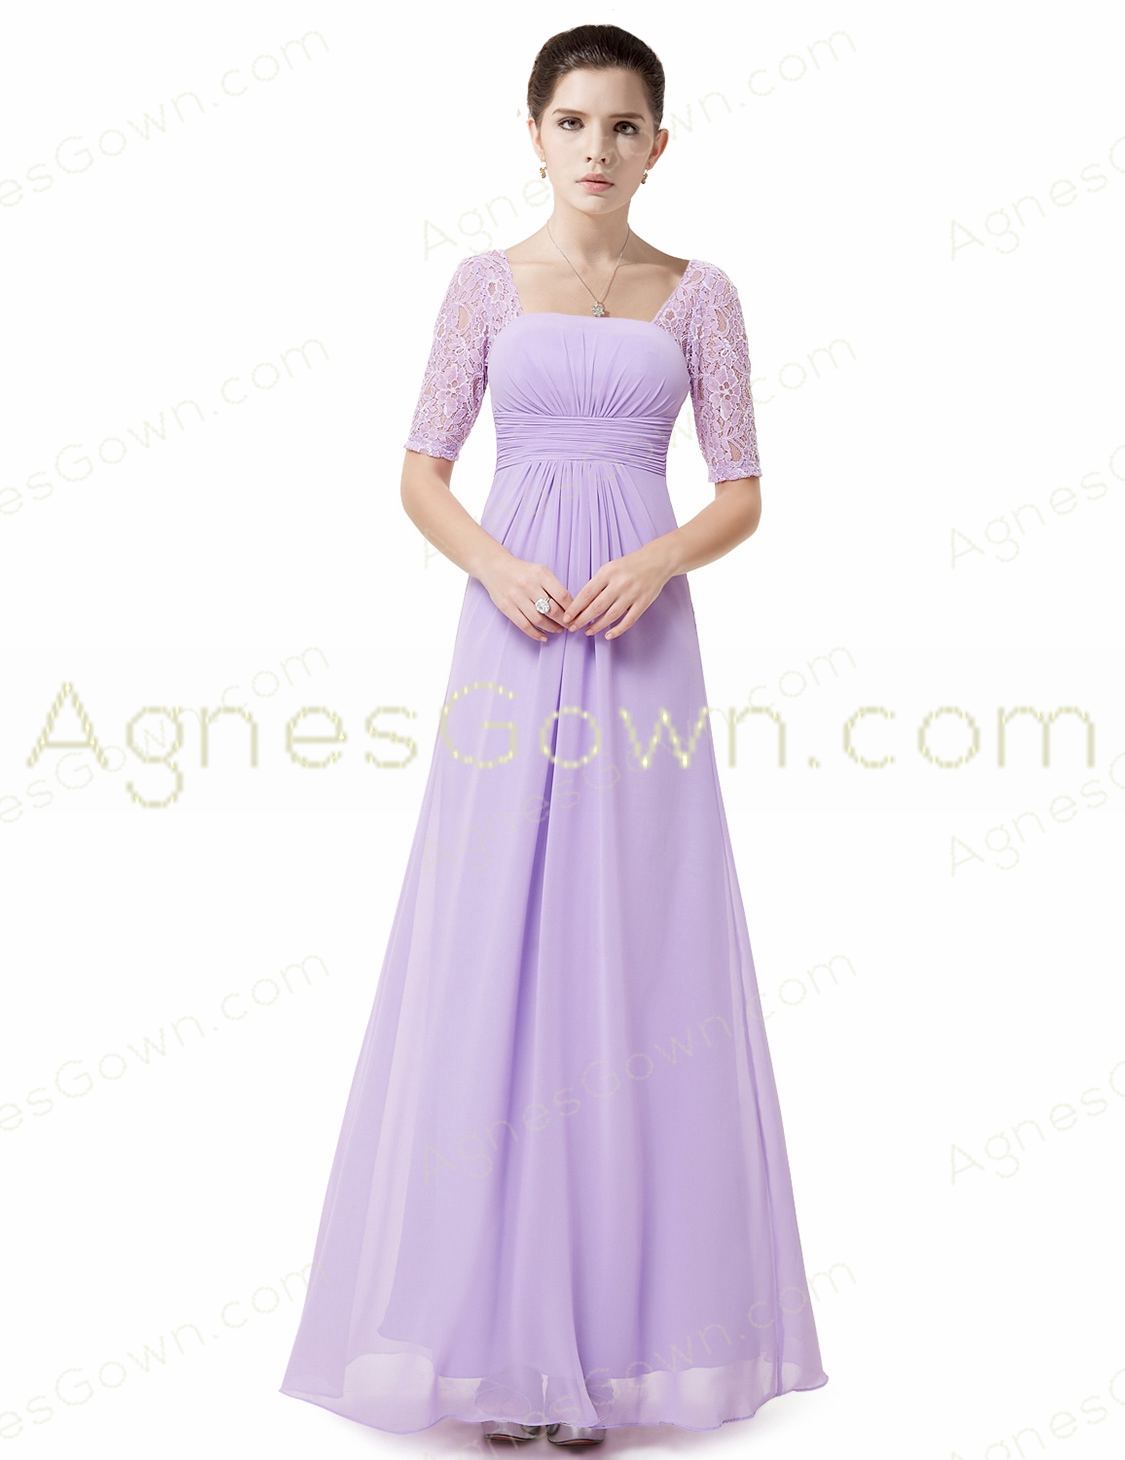 Half Sleeves Lilac Chiffon Mother Of The Bride Dress With Lace